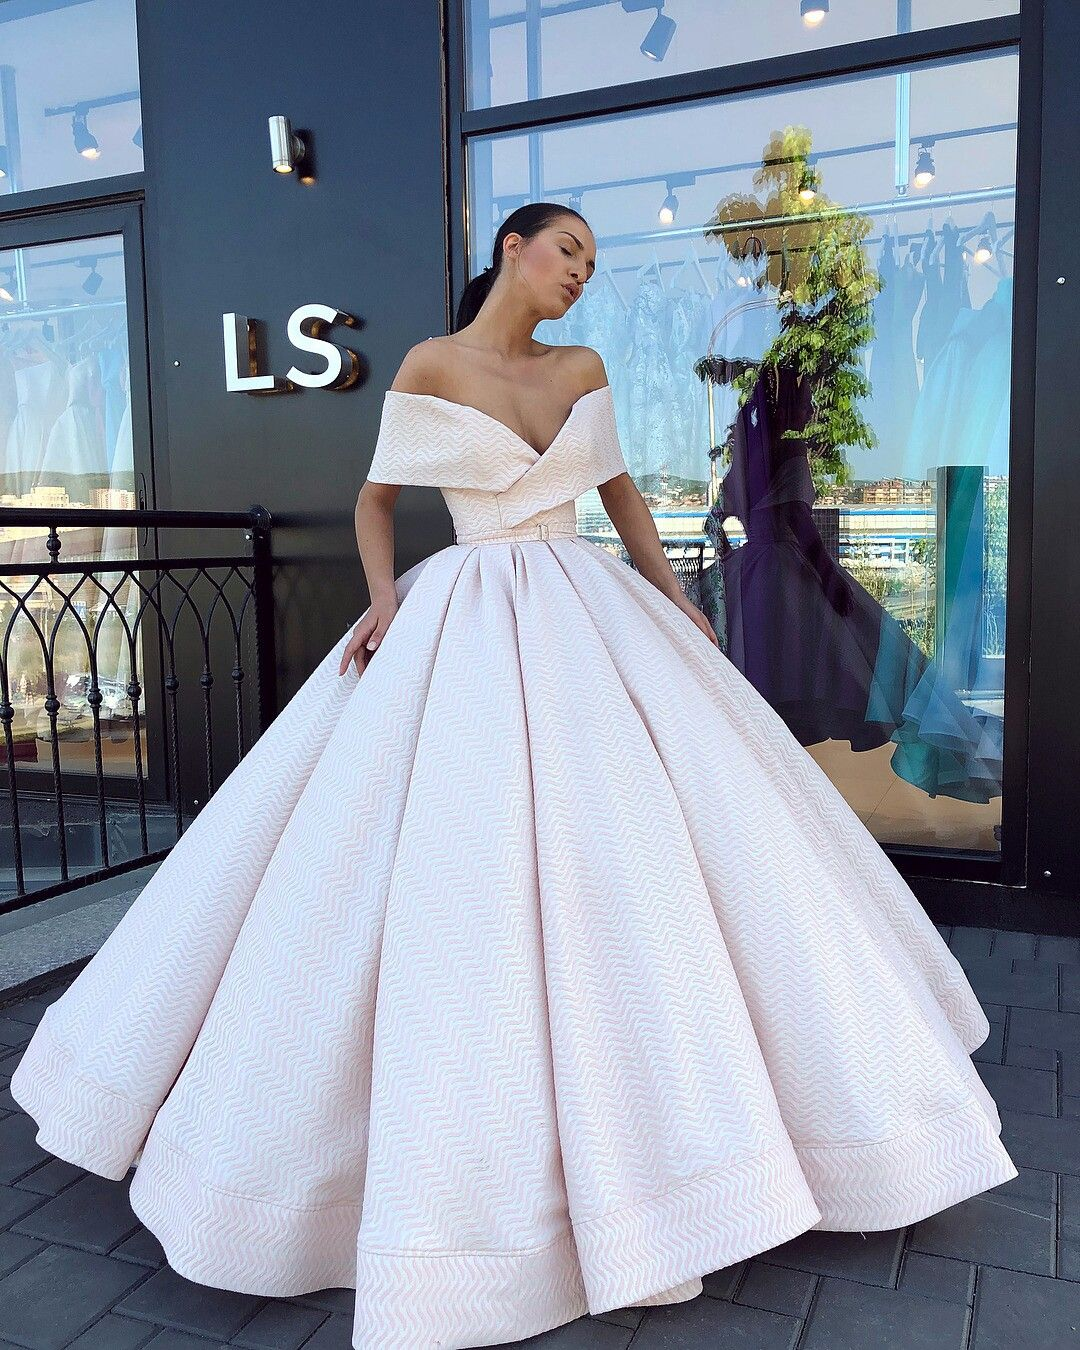 Ls white pink wedding dresses in pinterest dresses gowns